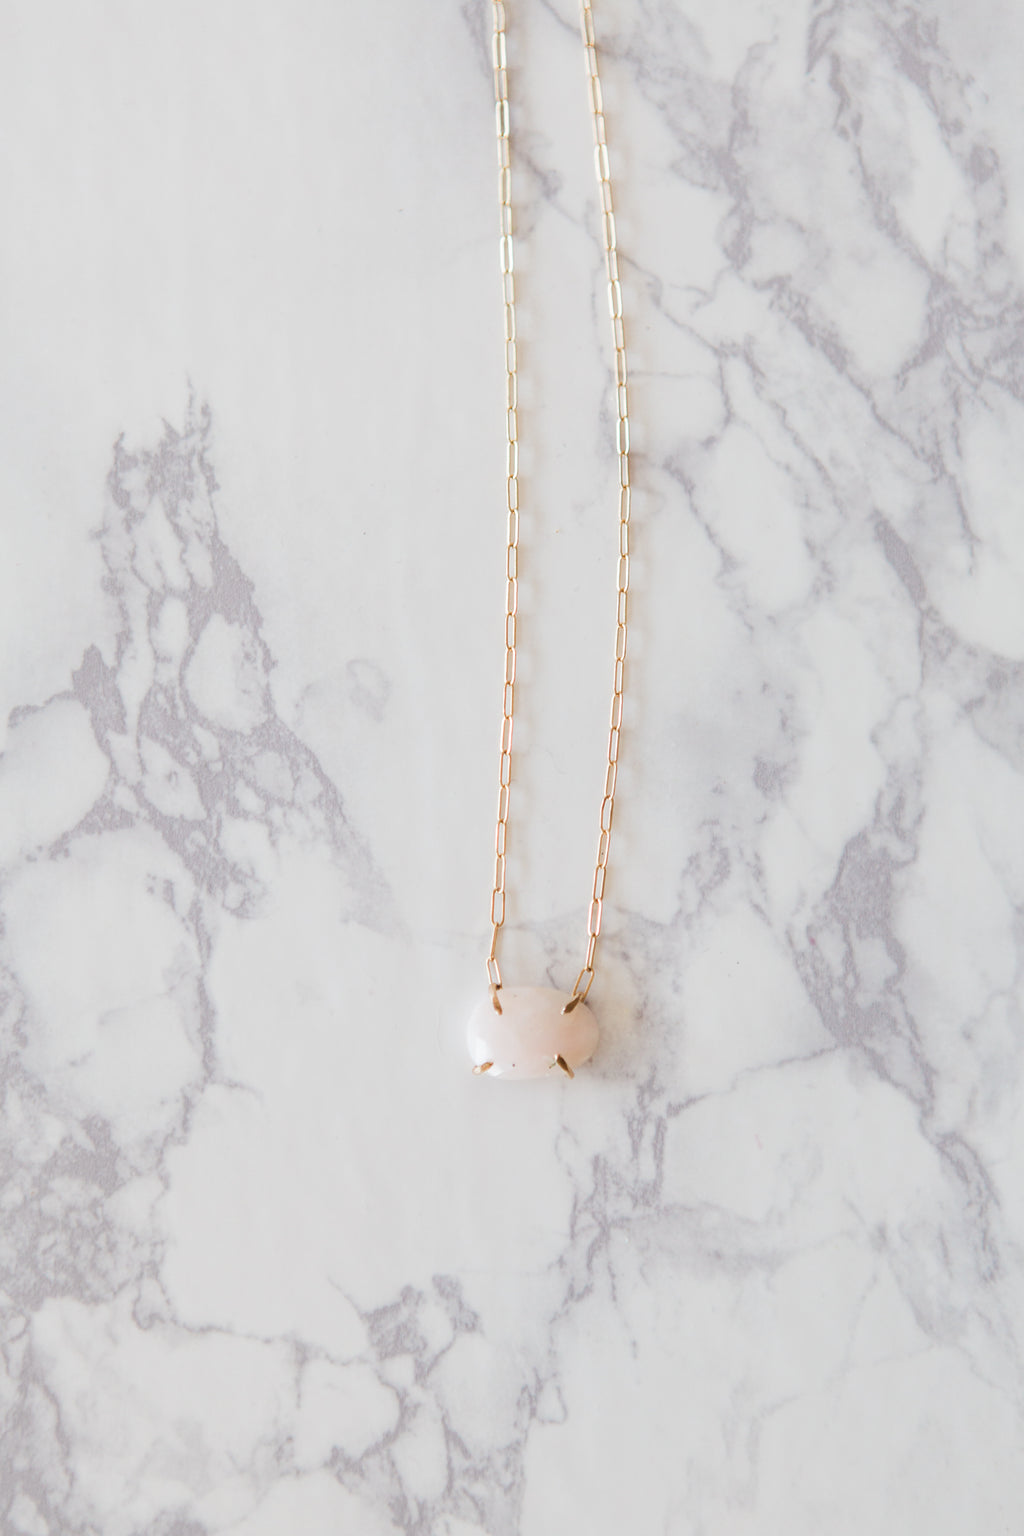 Delicate Rose & Gold Necklace - M Street Studio